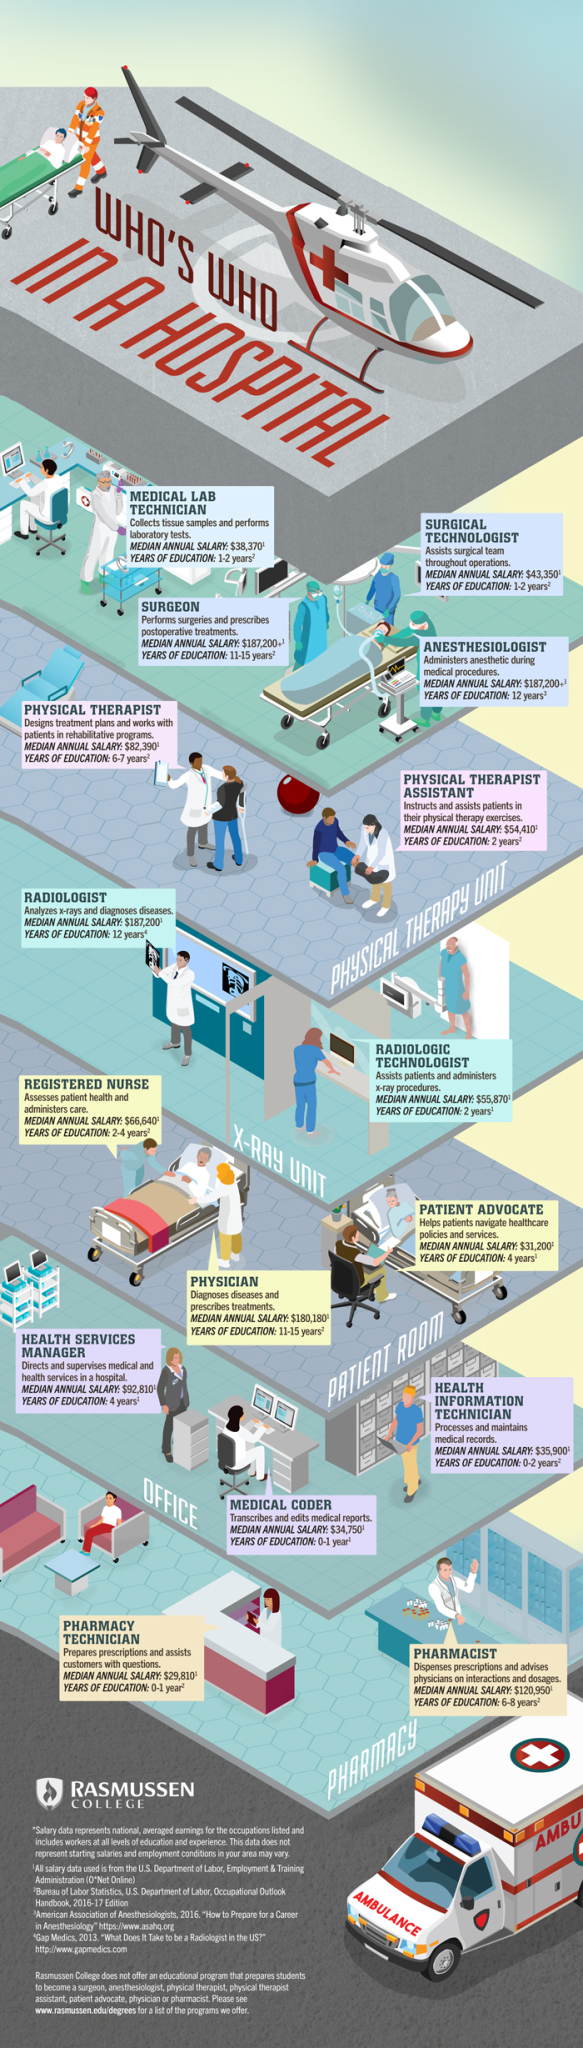 Medical Careers List >> Who S Who In A Hospital Your Visual Guide To Medical Jobs